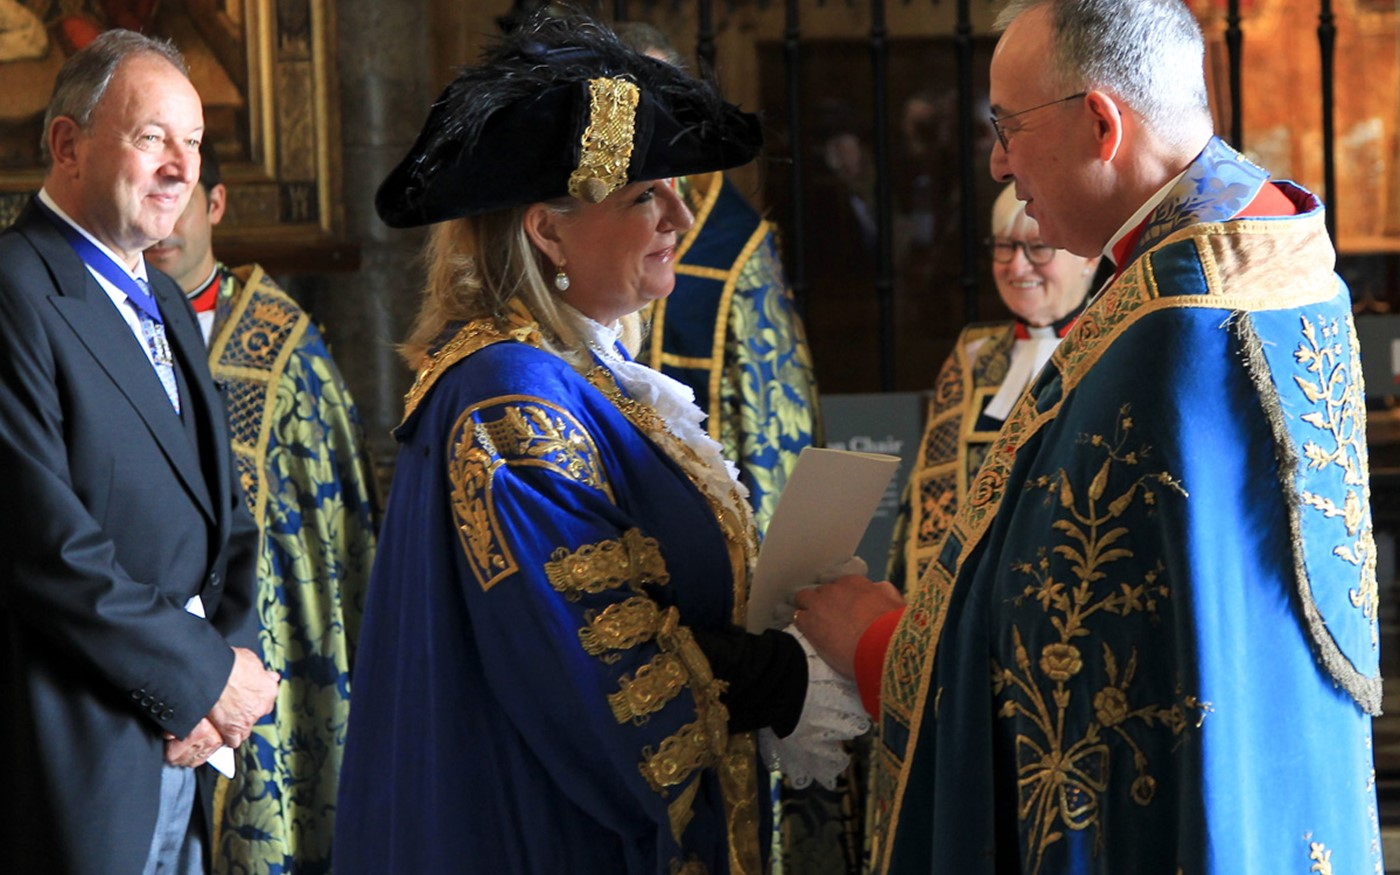 The Lord Mayor with the The Dean of Westminster after the service